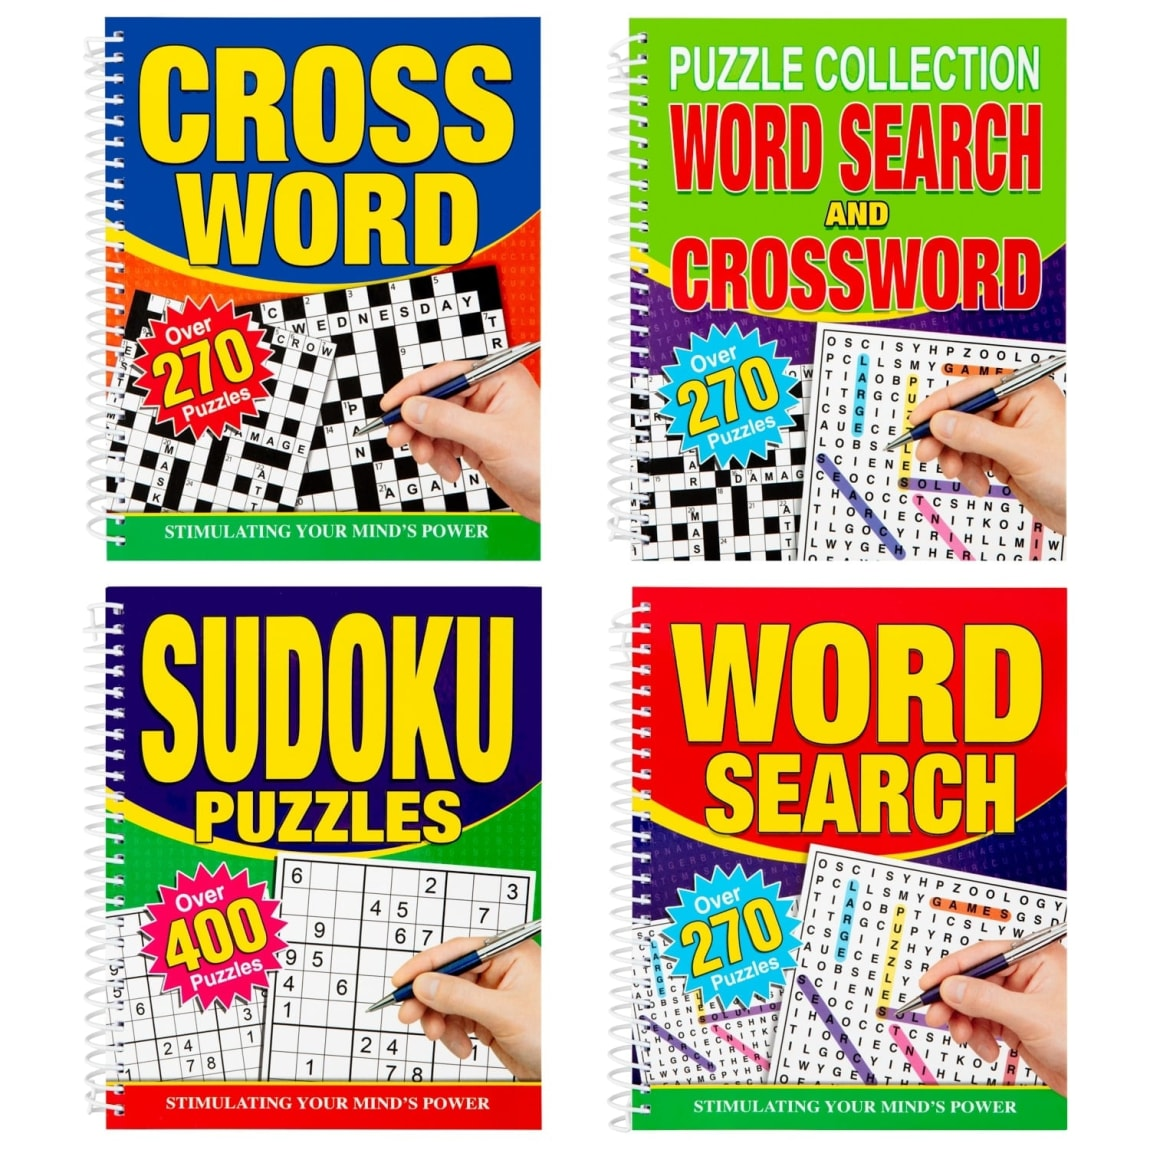 Large Print Puzzle Book - Word Search & Crossword